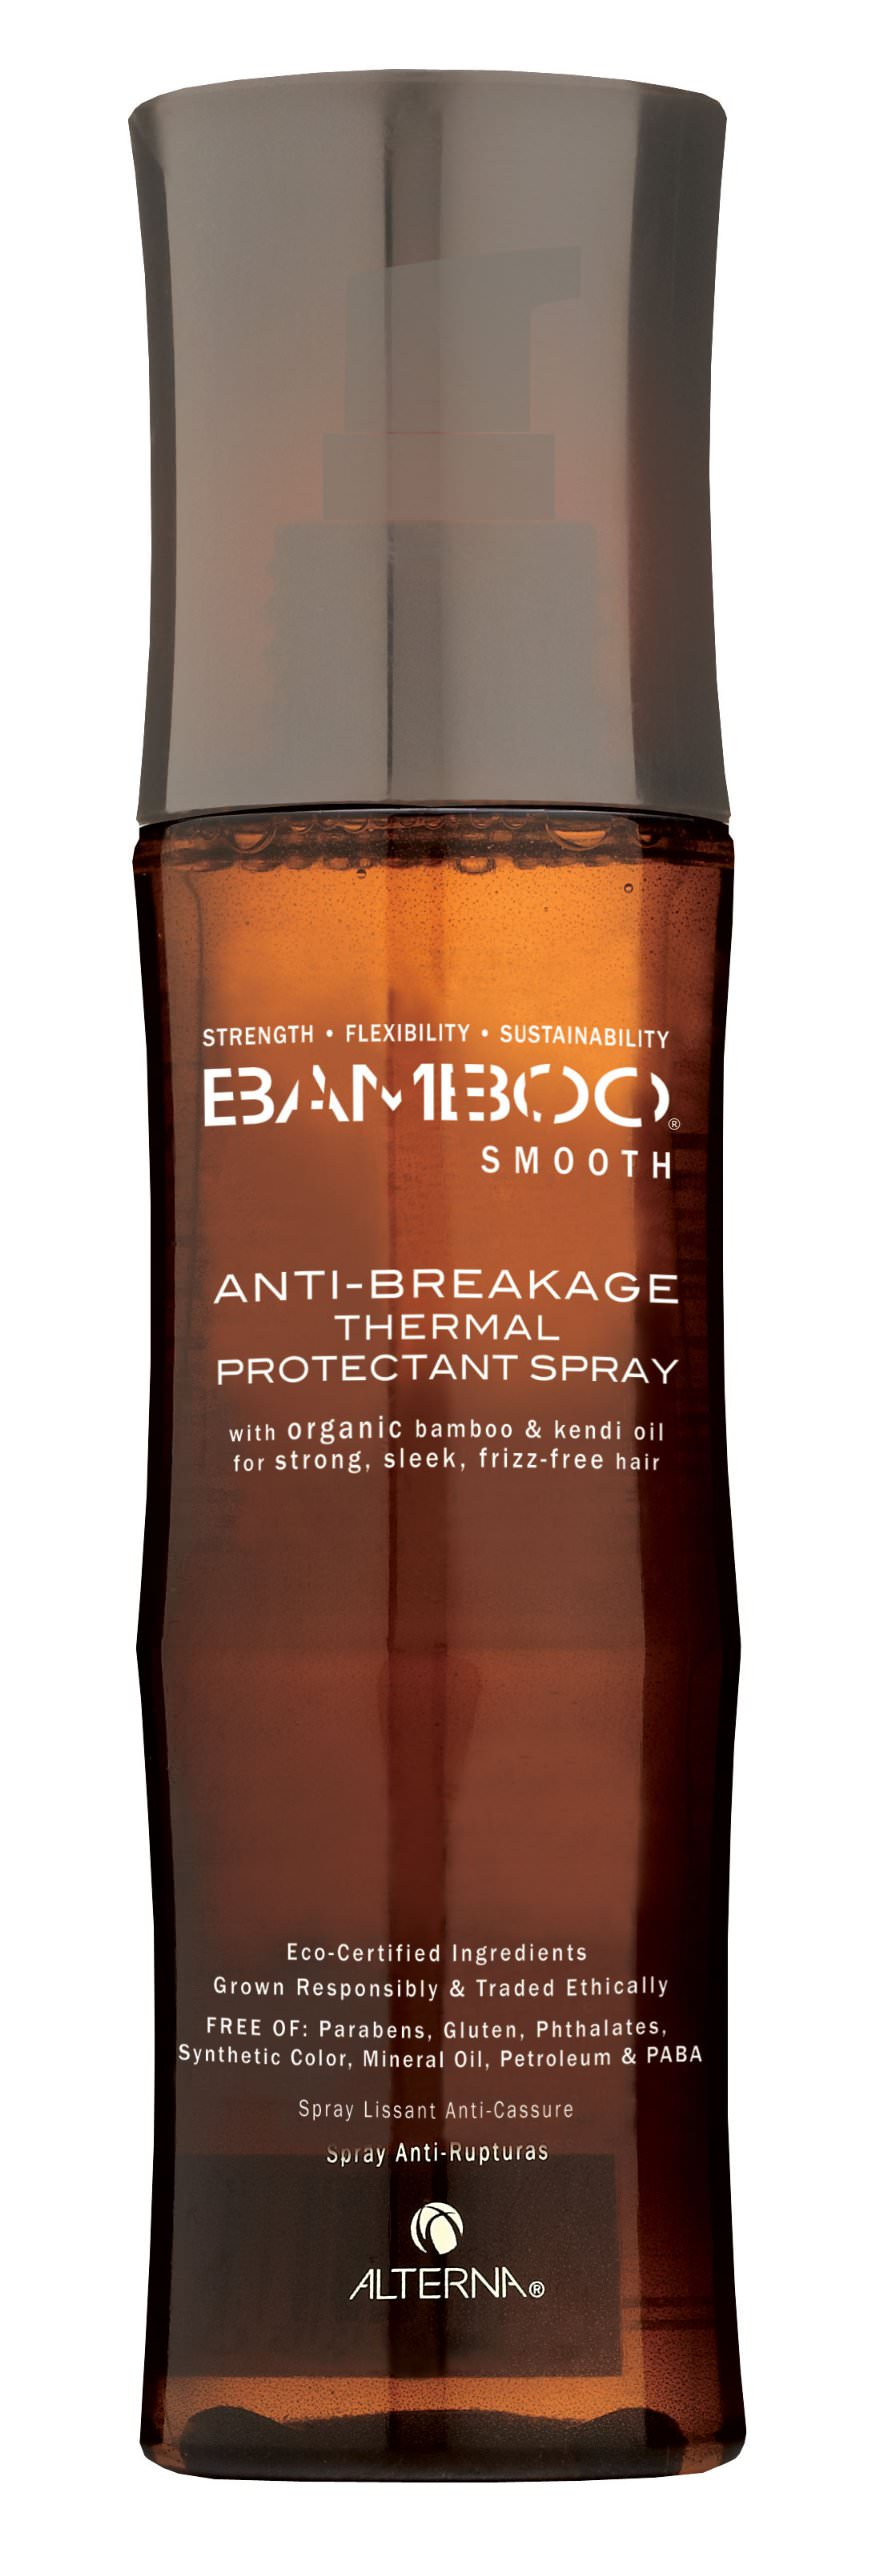 Alterna Bamboo Smooth Anti-Breakage Thermal Protectant